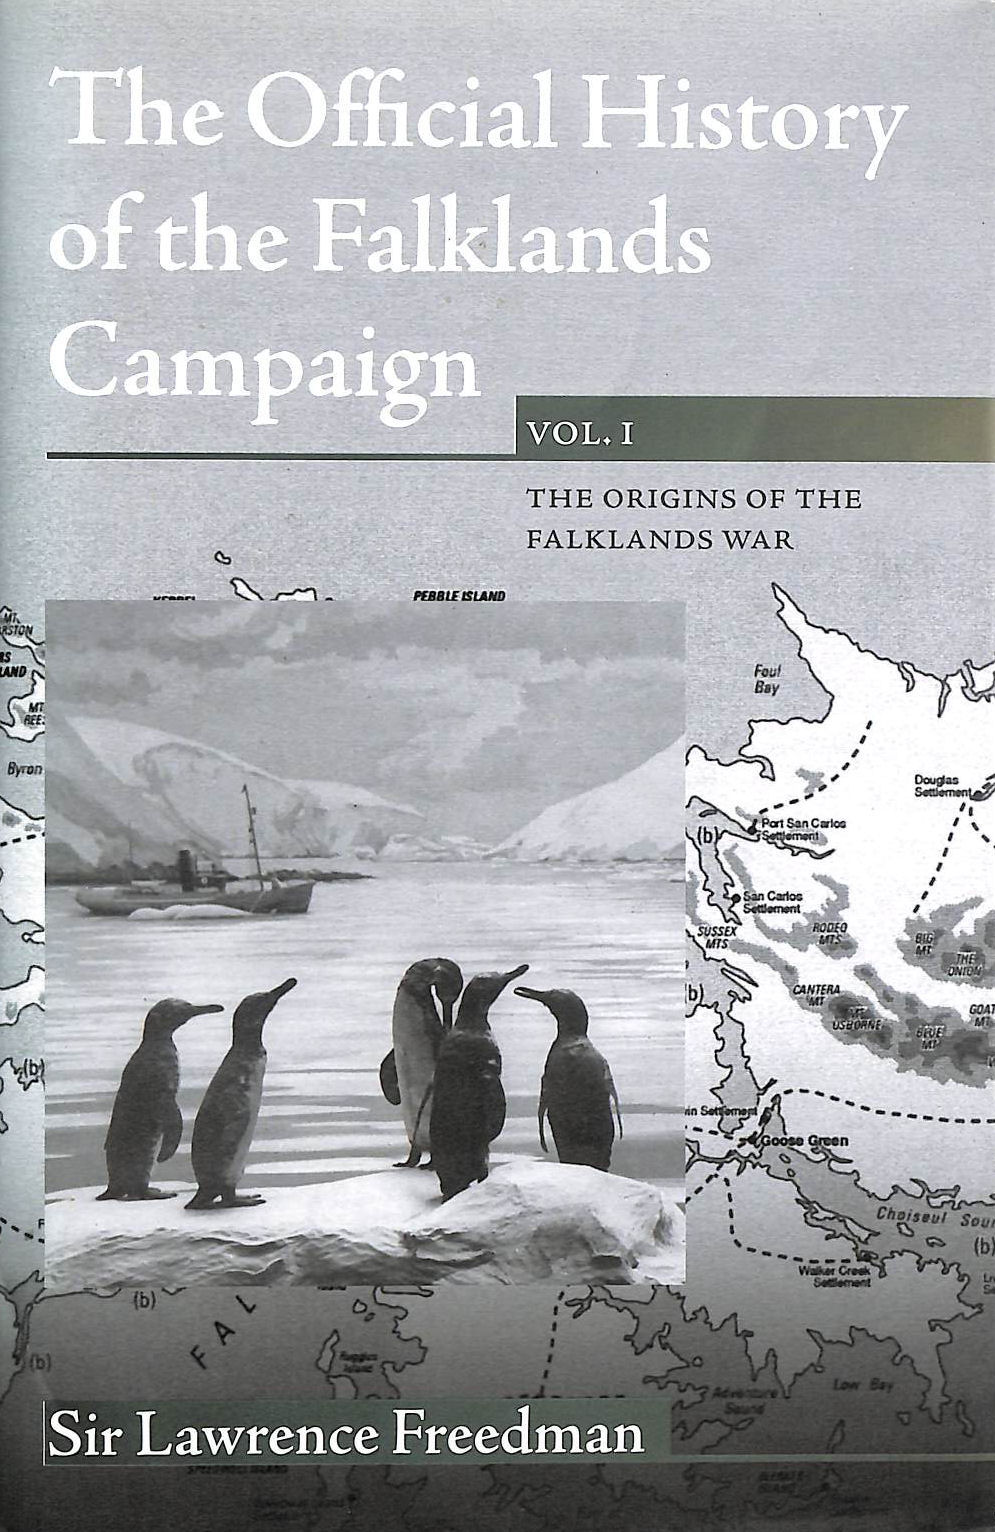 Image for The Official History Of The Falklands Campaign, Volume 1: The Origins Of The Falklands War: V. 1 (Government Official History Series)